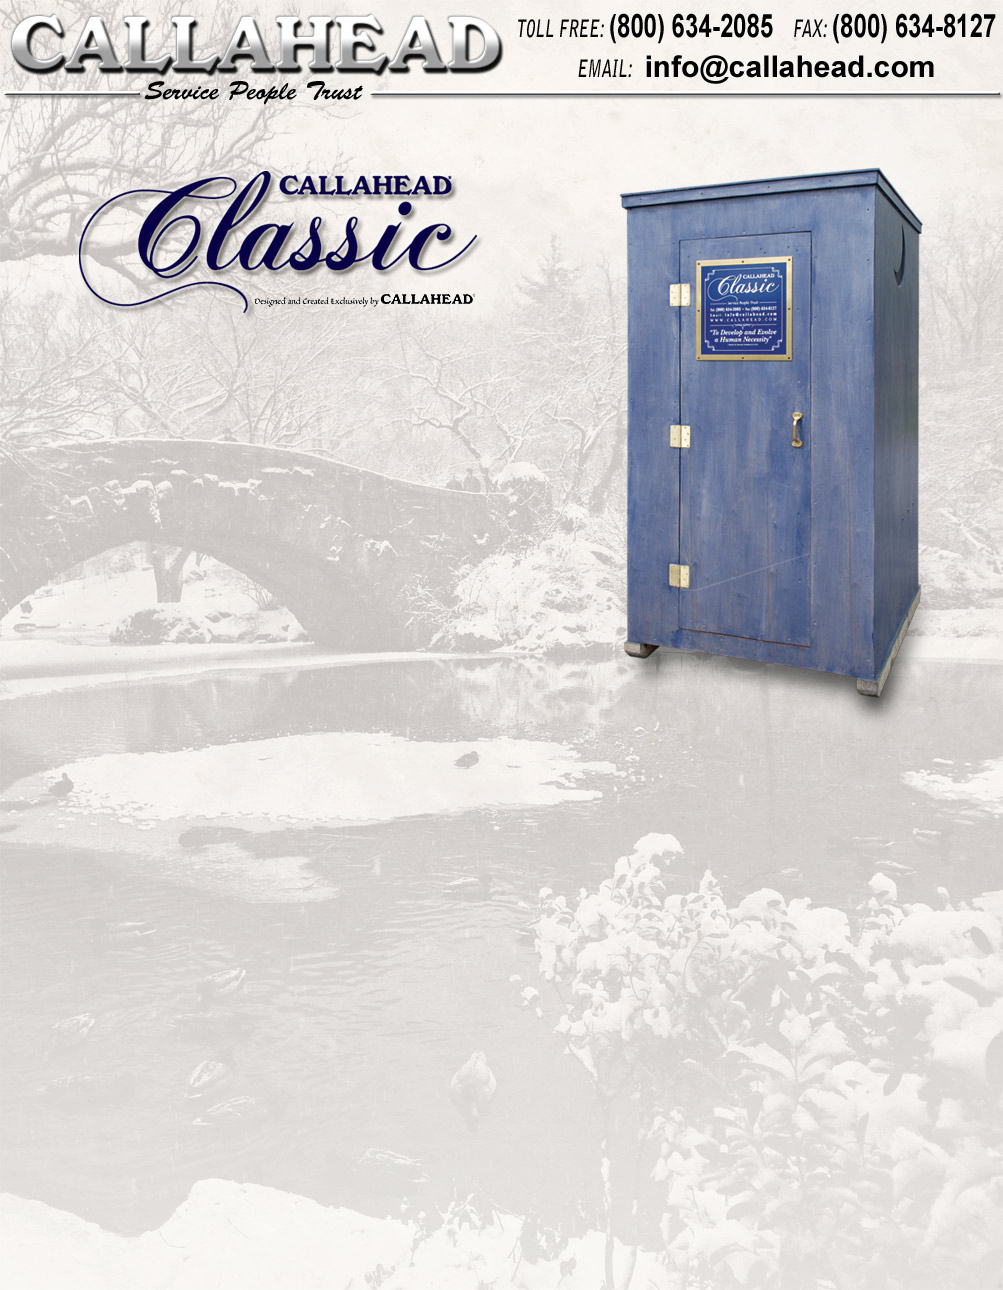 The Classic Portable Toilet